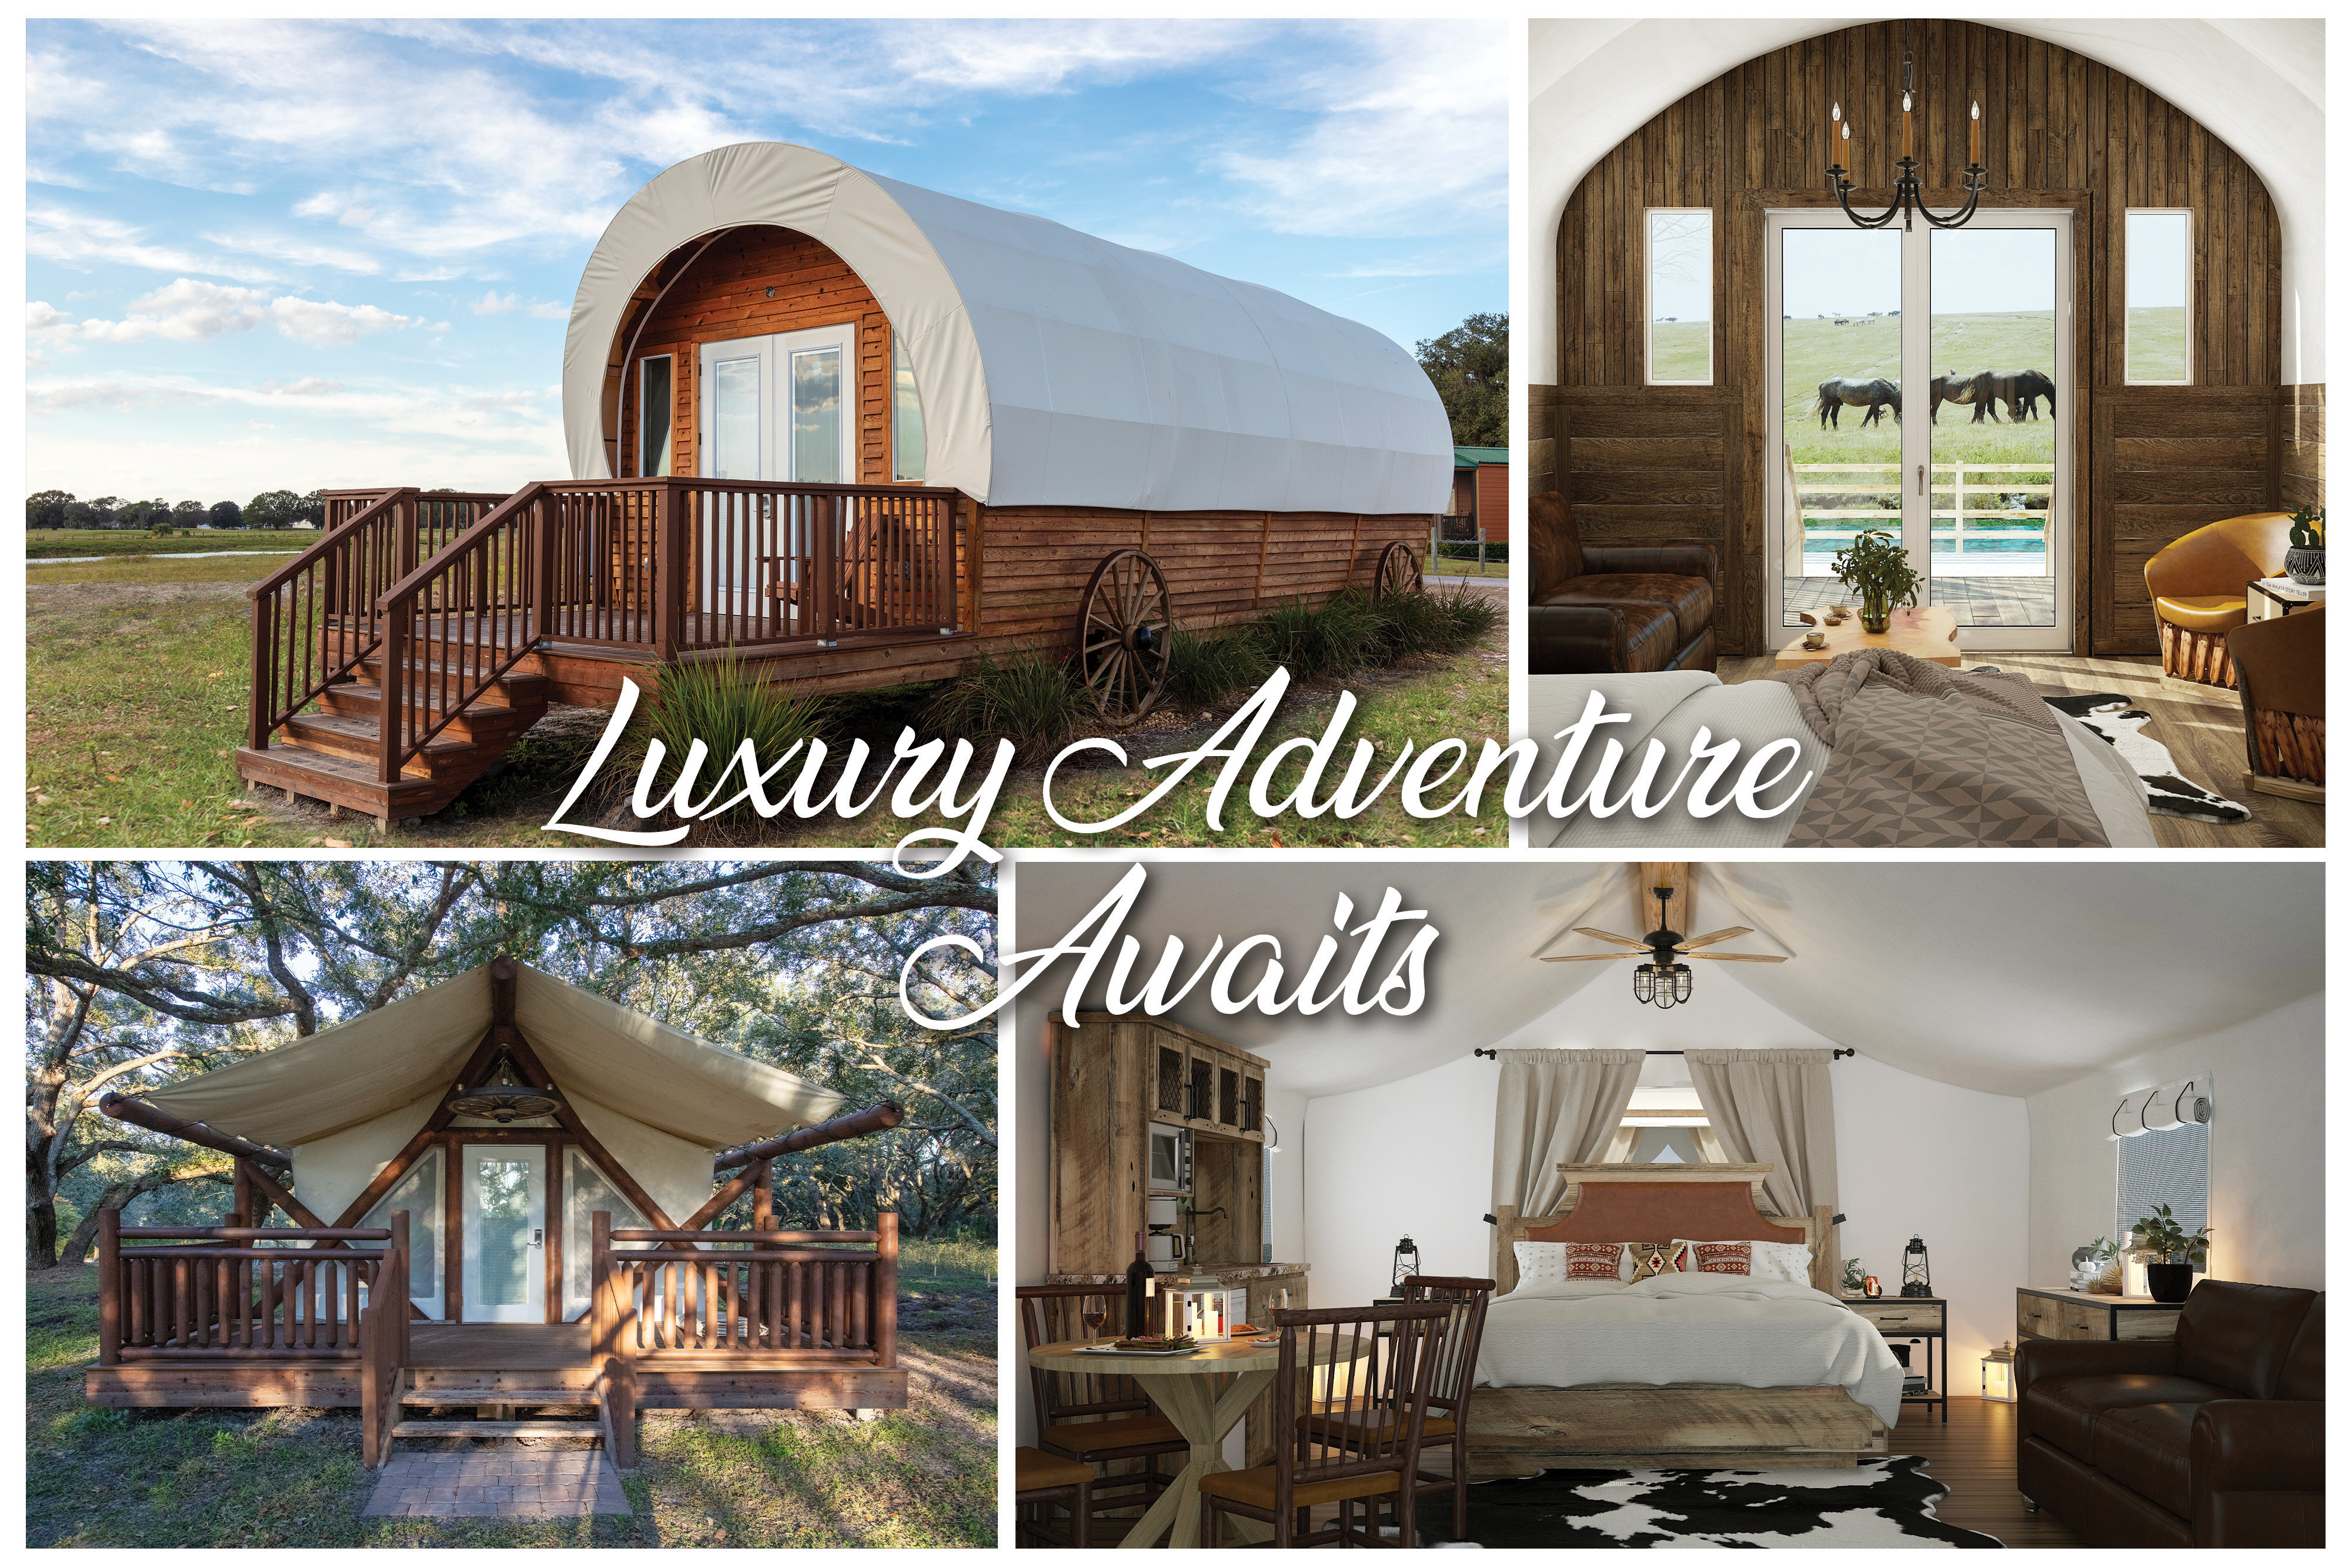 Luxurious Glamping Accommodations - Westgate Resorts